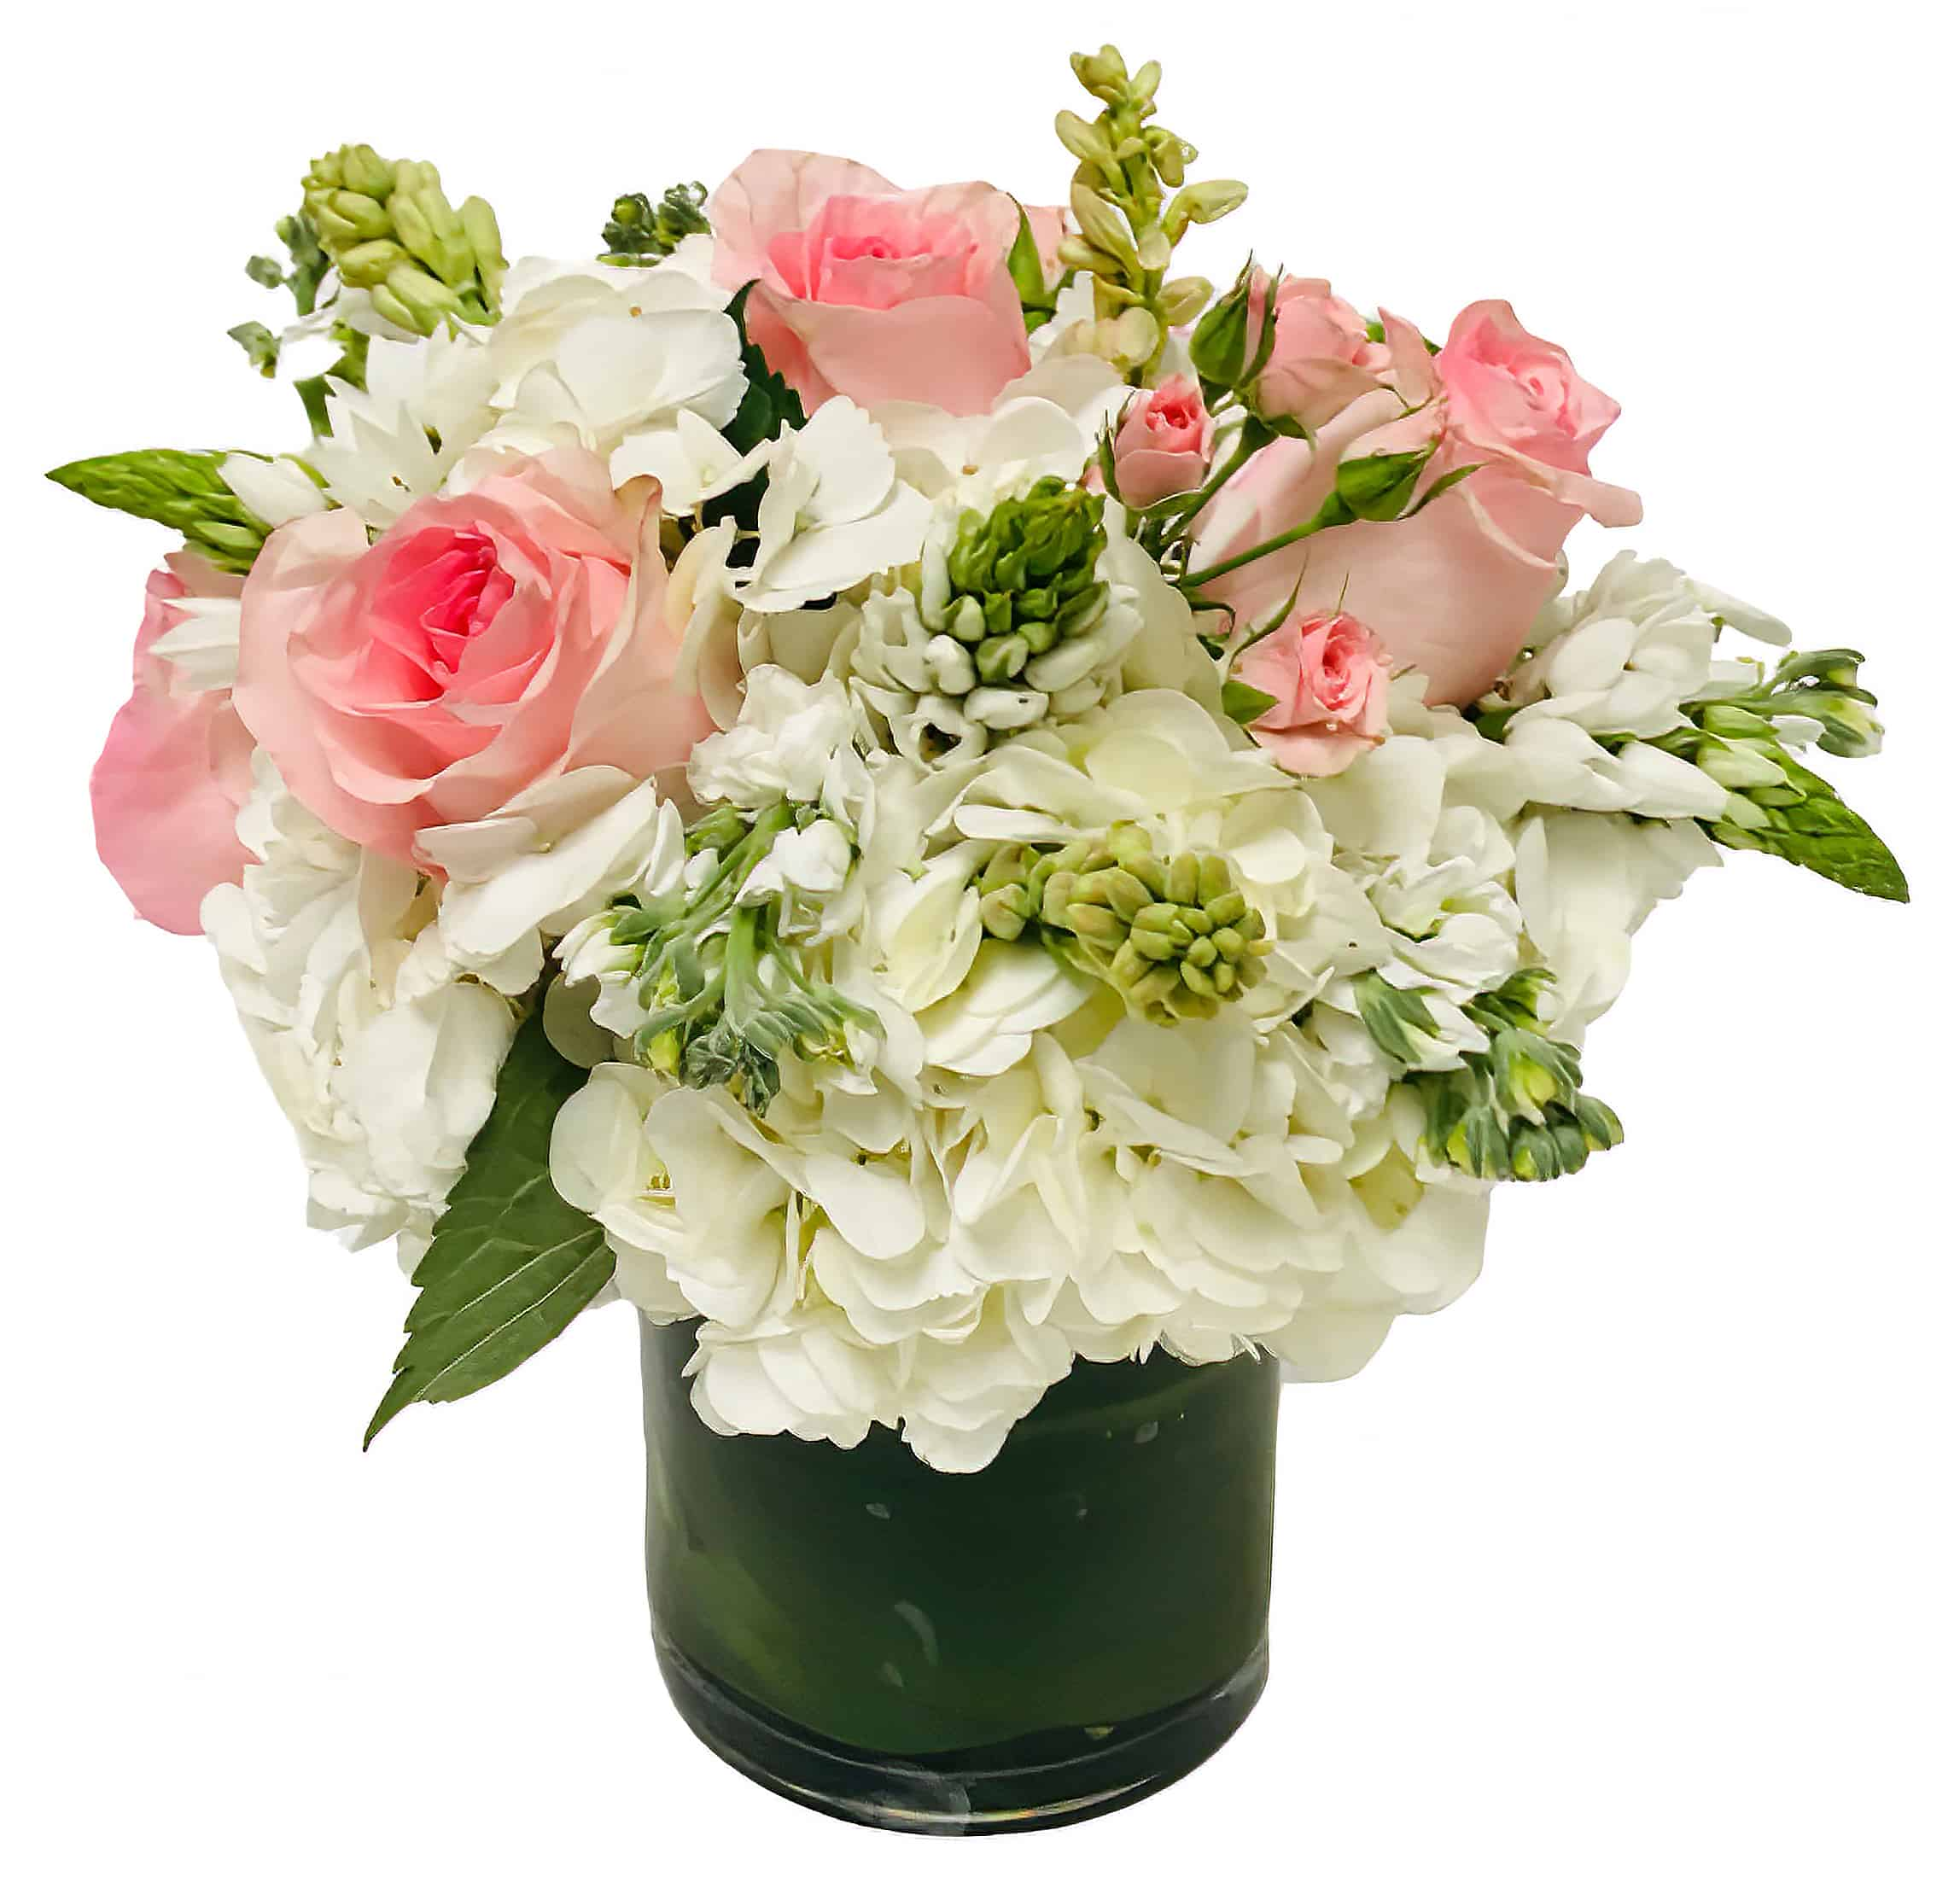 Celadon and Salmon Deluxe Flower Arrangement